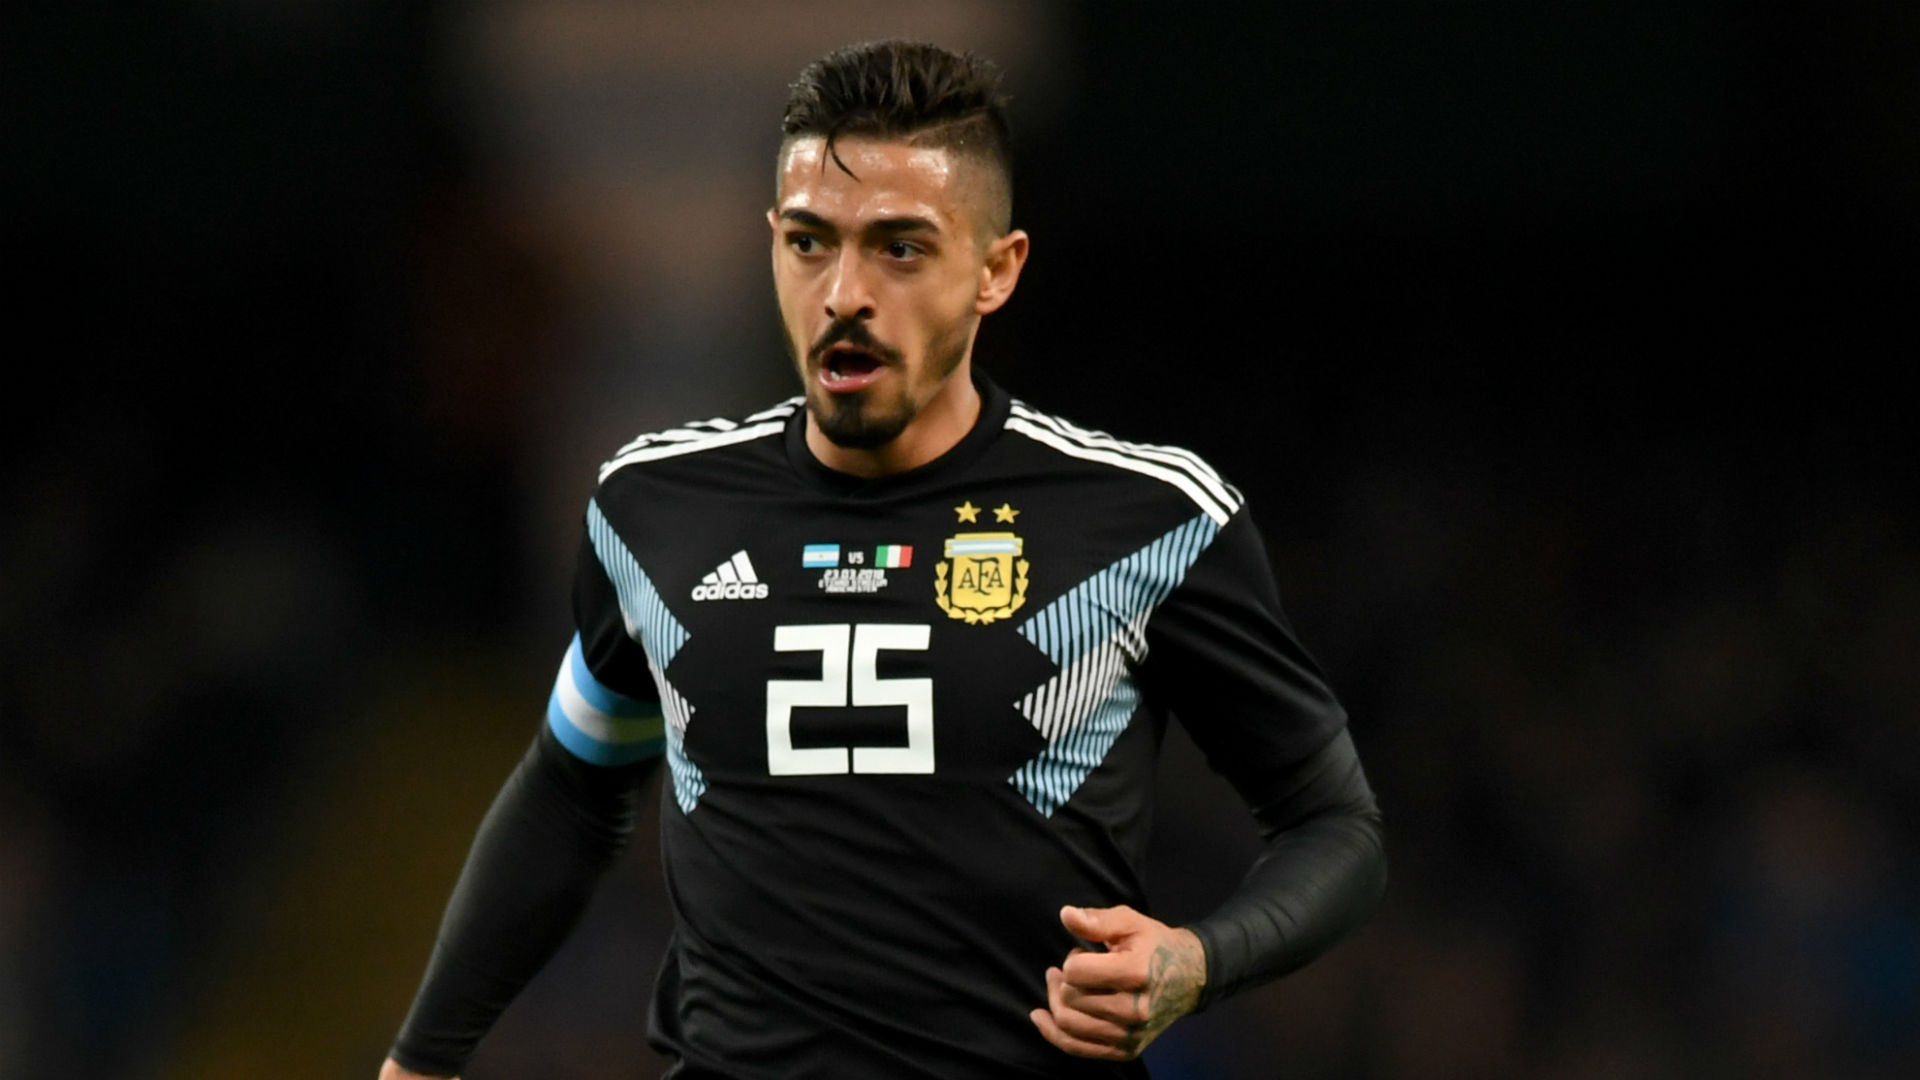 Argentina call up Perez to replace Lanzini after West Ham ace's injury